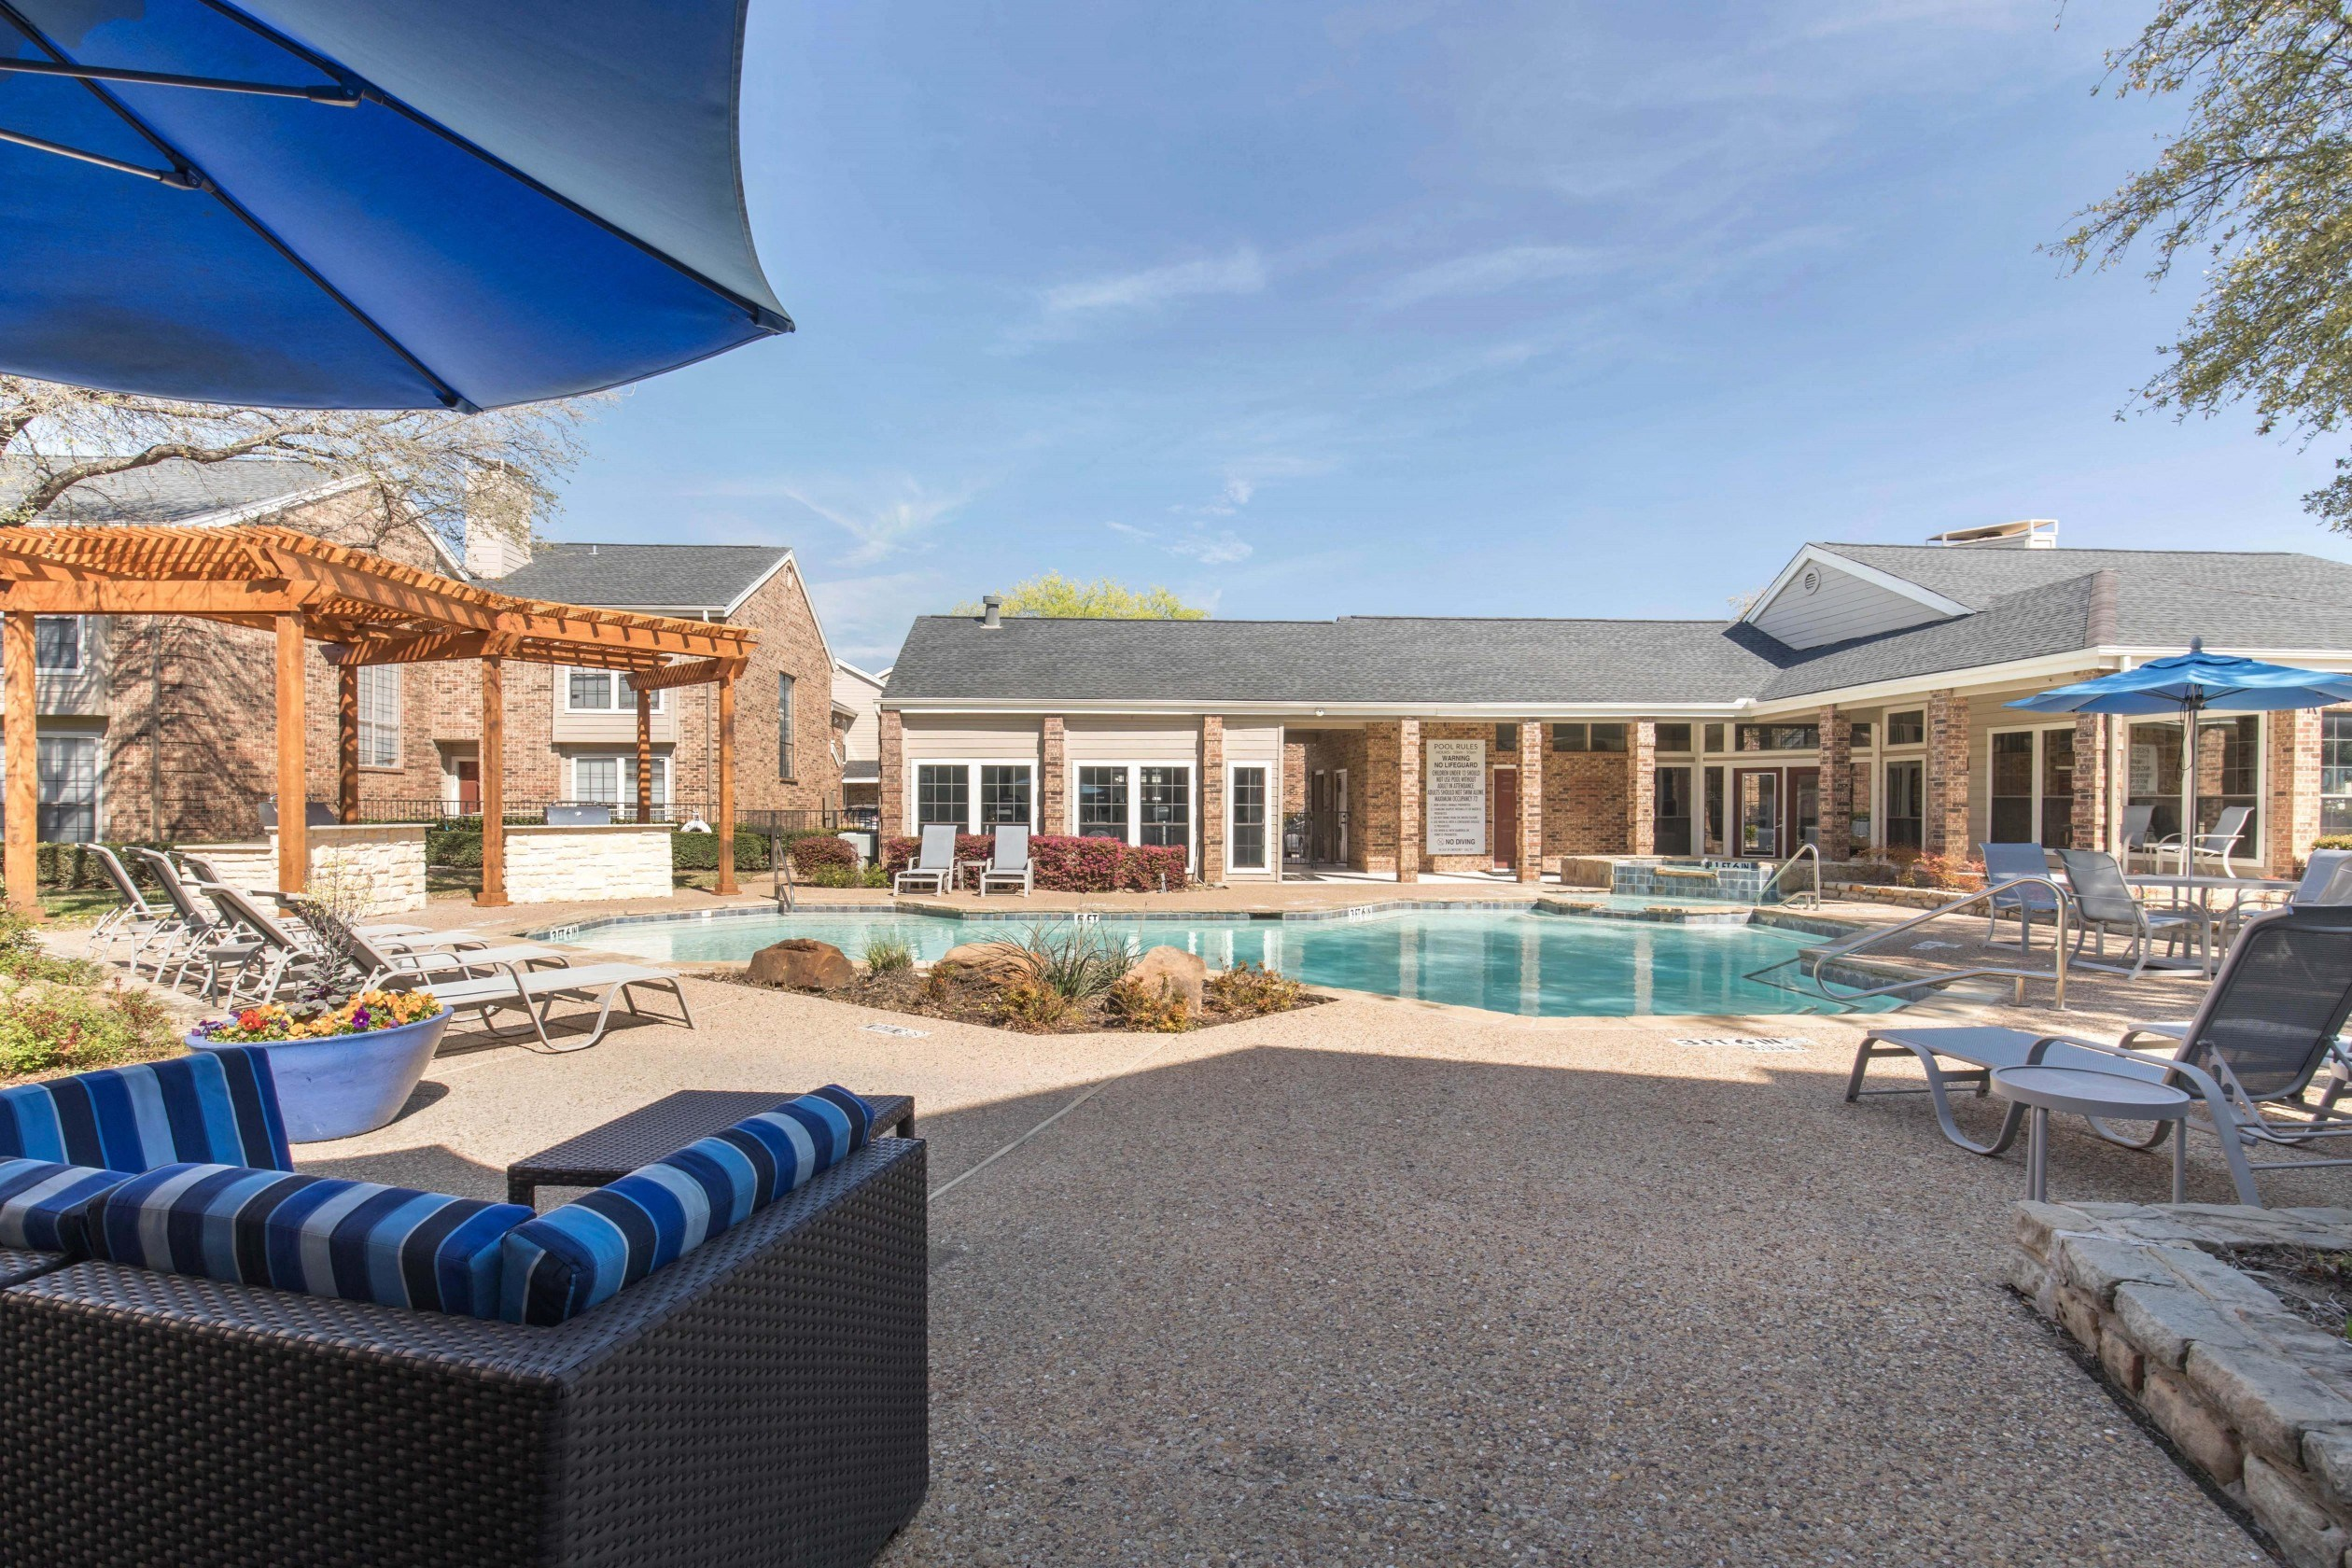 Sparkling blue swimming pool with spacious tanning deck, clubhouse exterior in the background, and blue and gray striped pool furniture